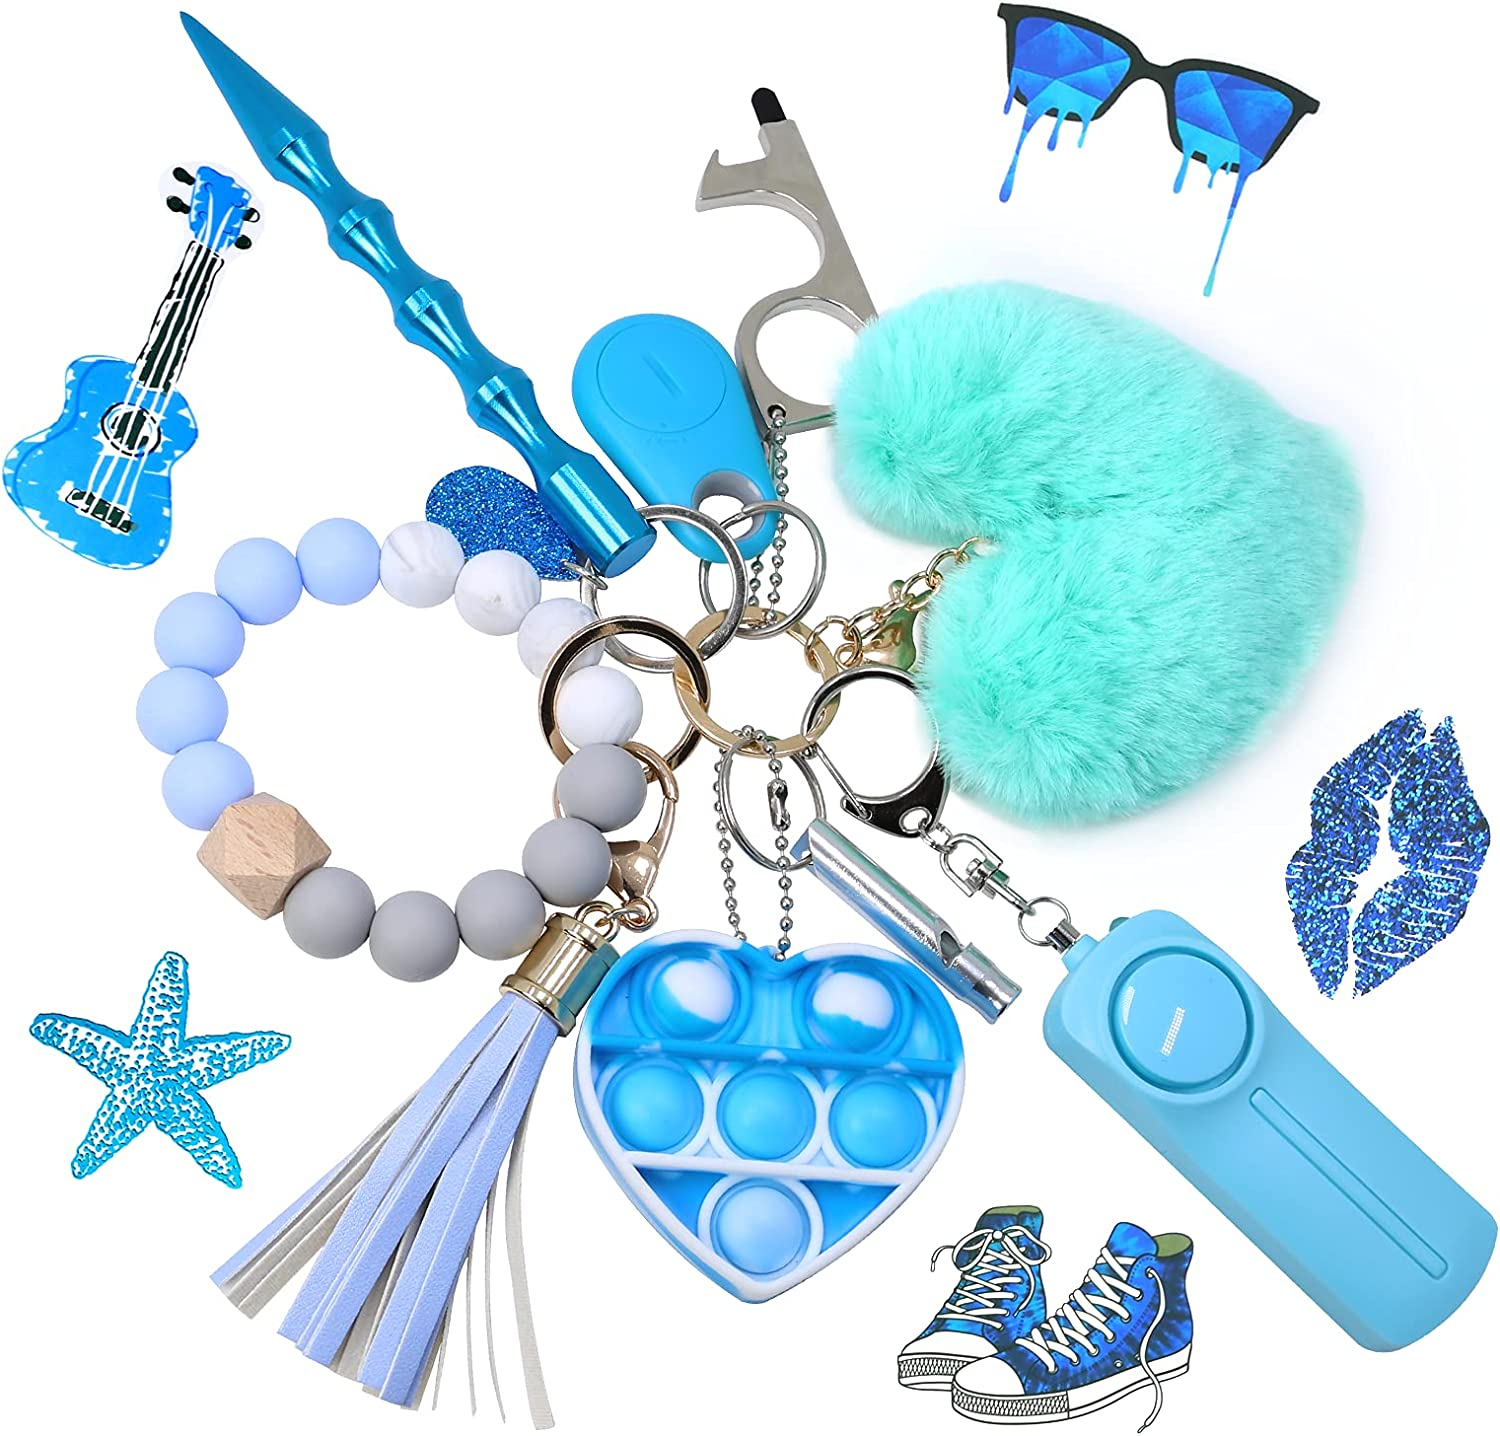 Keychain for Women and Girls,Keychain Sets for Woman